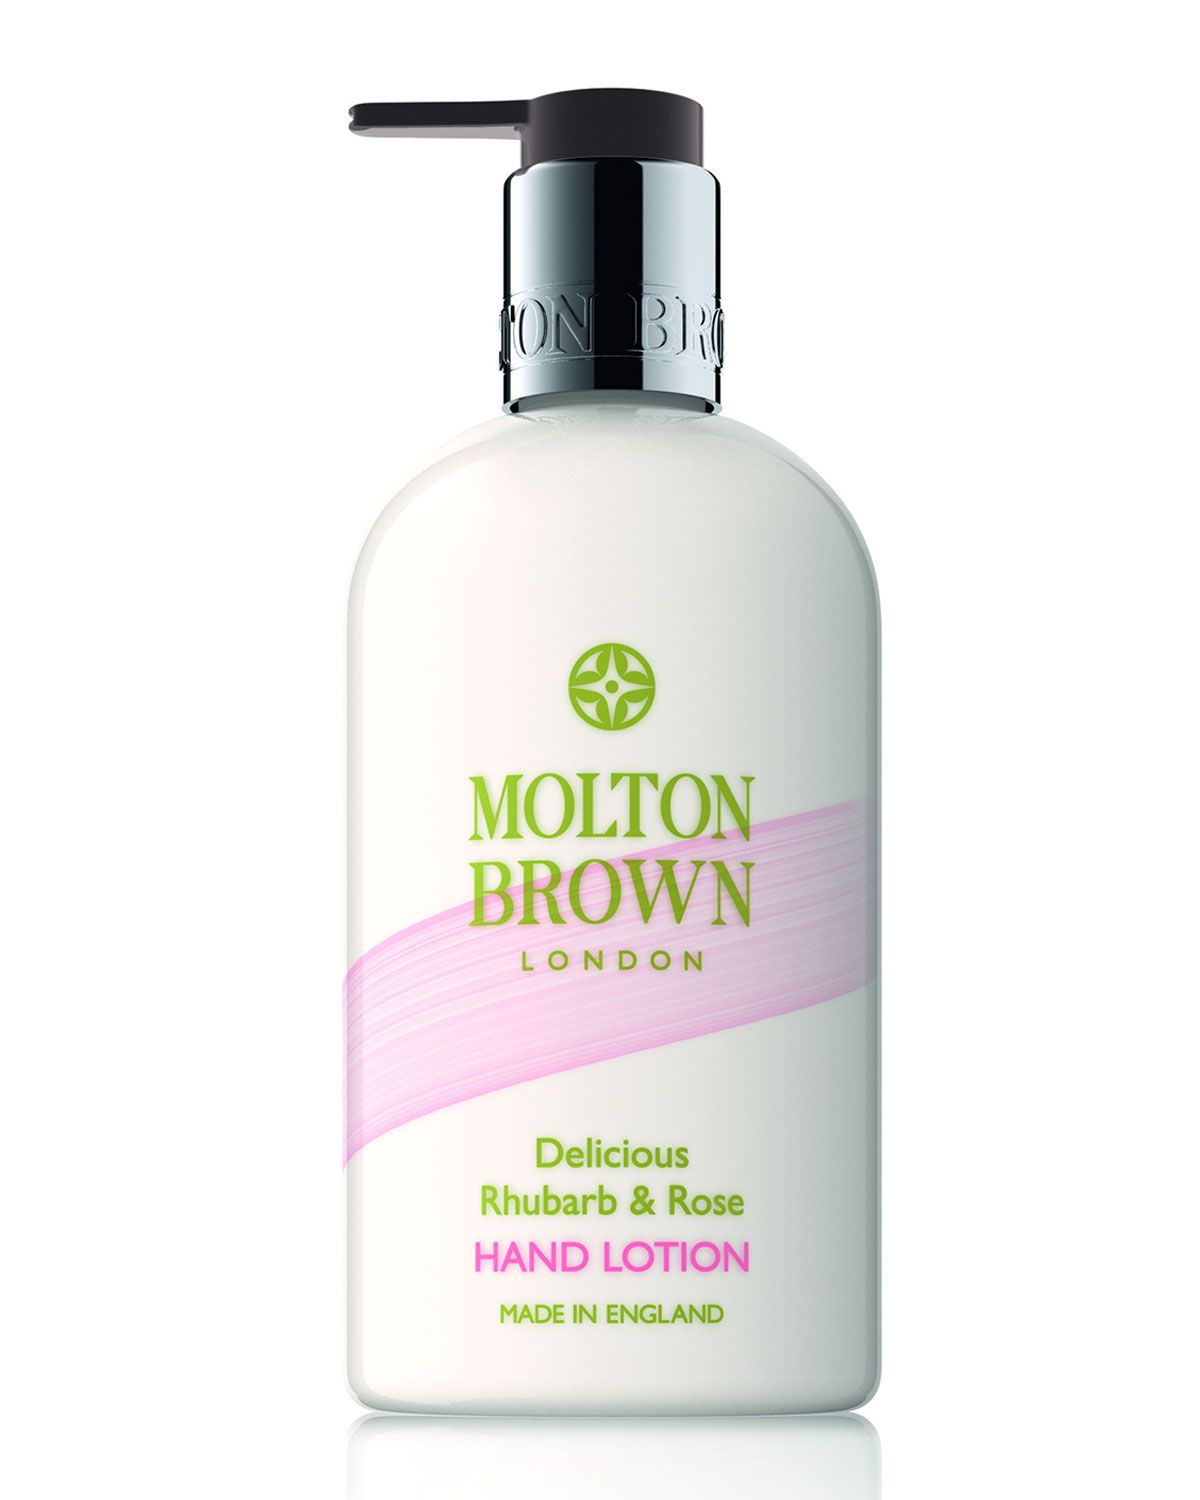 Delicious Rhubarb & Rose Hand Lotion 10 oz / 300 mL | Products